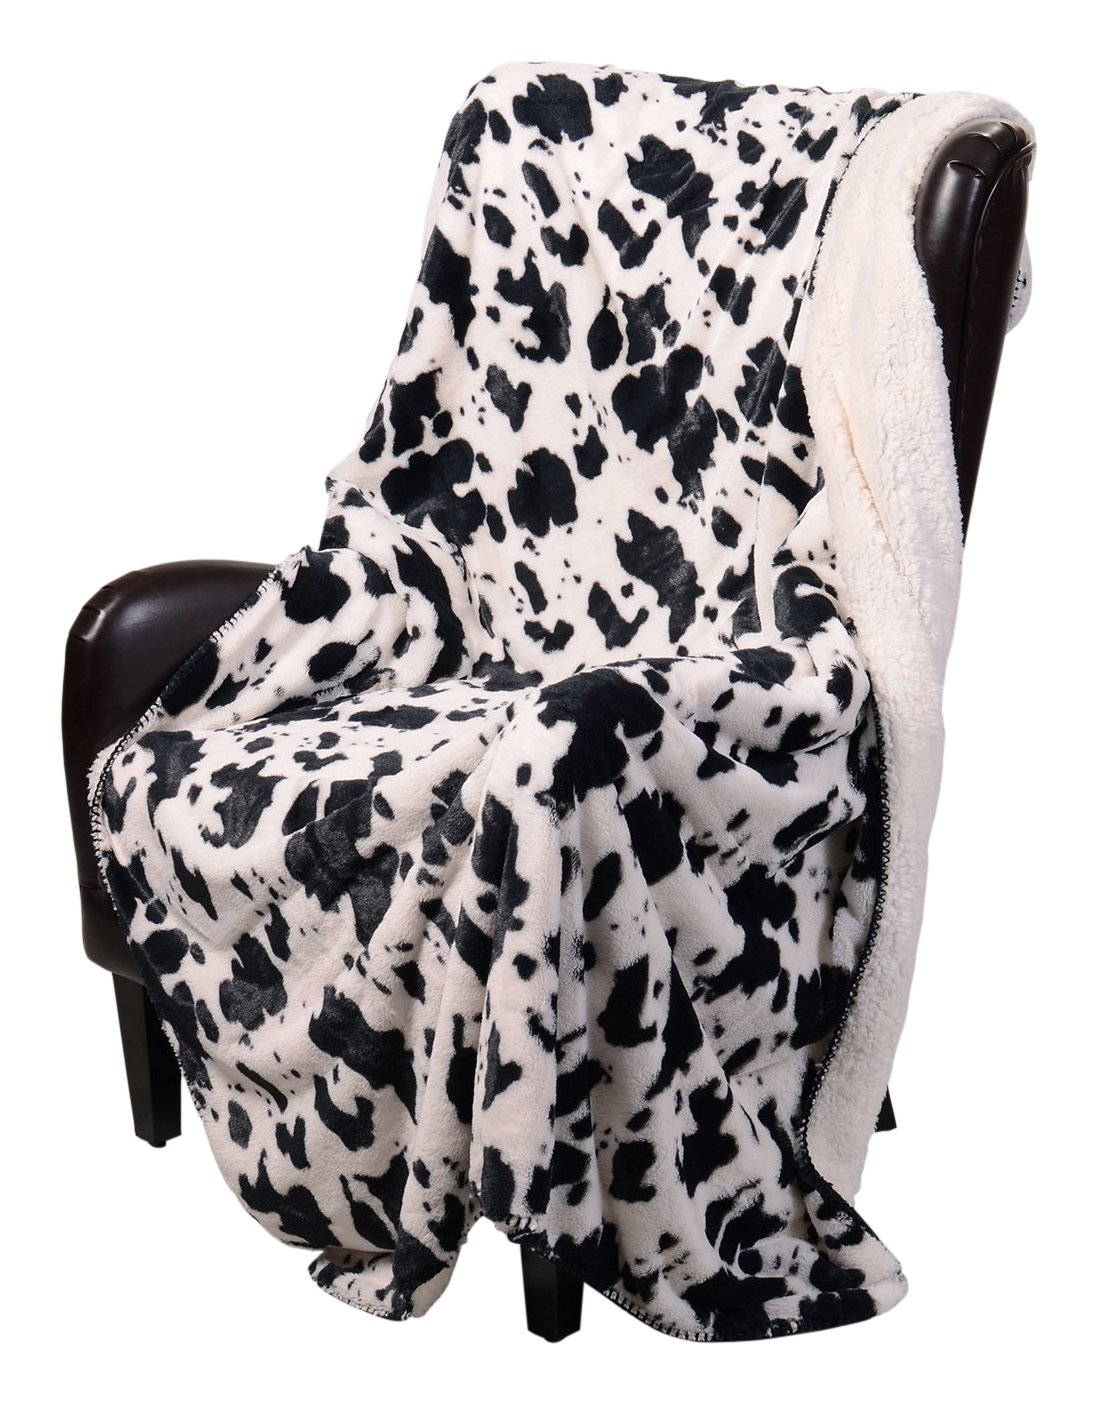 Regal Comfort Sherpa Luxury Throw Western Style Cow Print by Regal Comfort